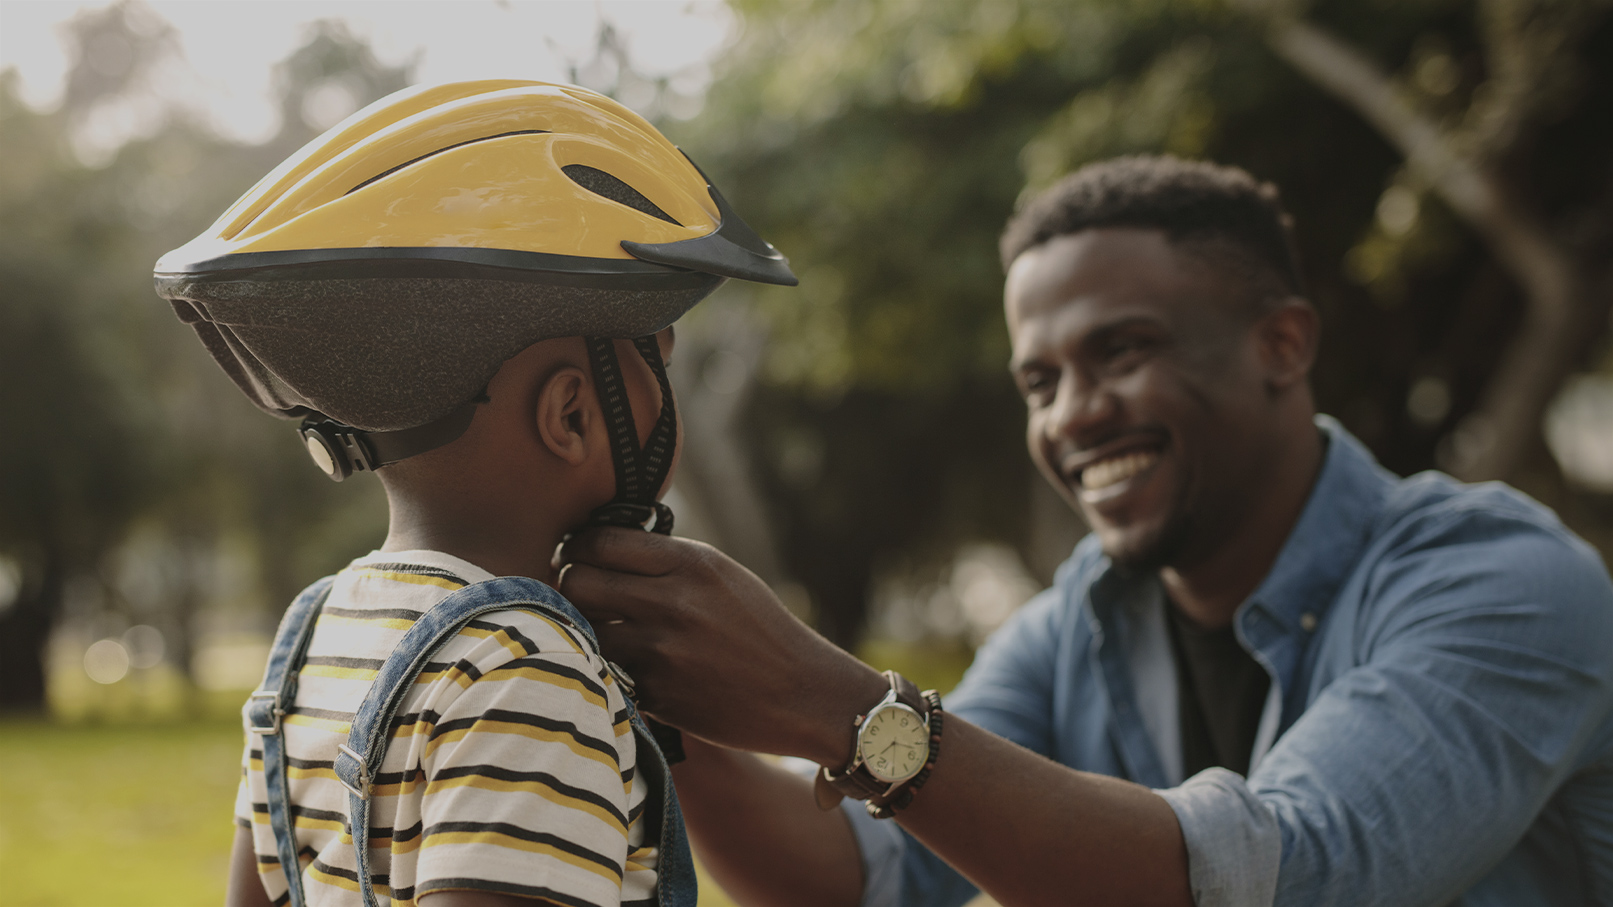 Father practicing safe & fun summer activities with son - buckling bicycle helmet